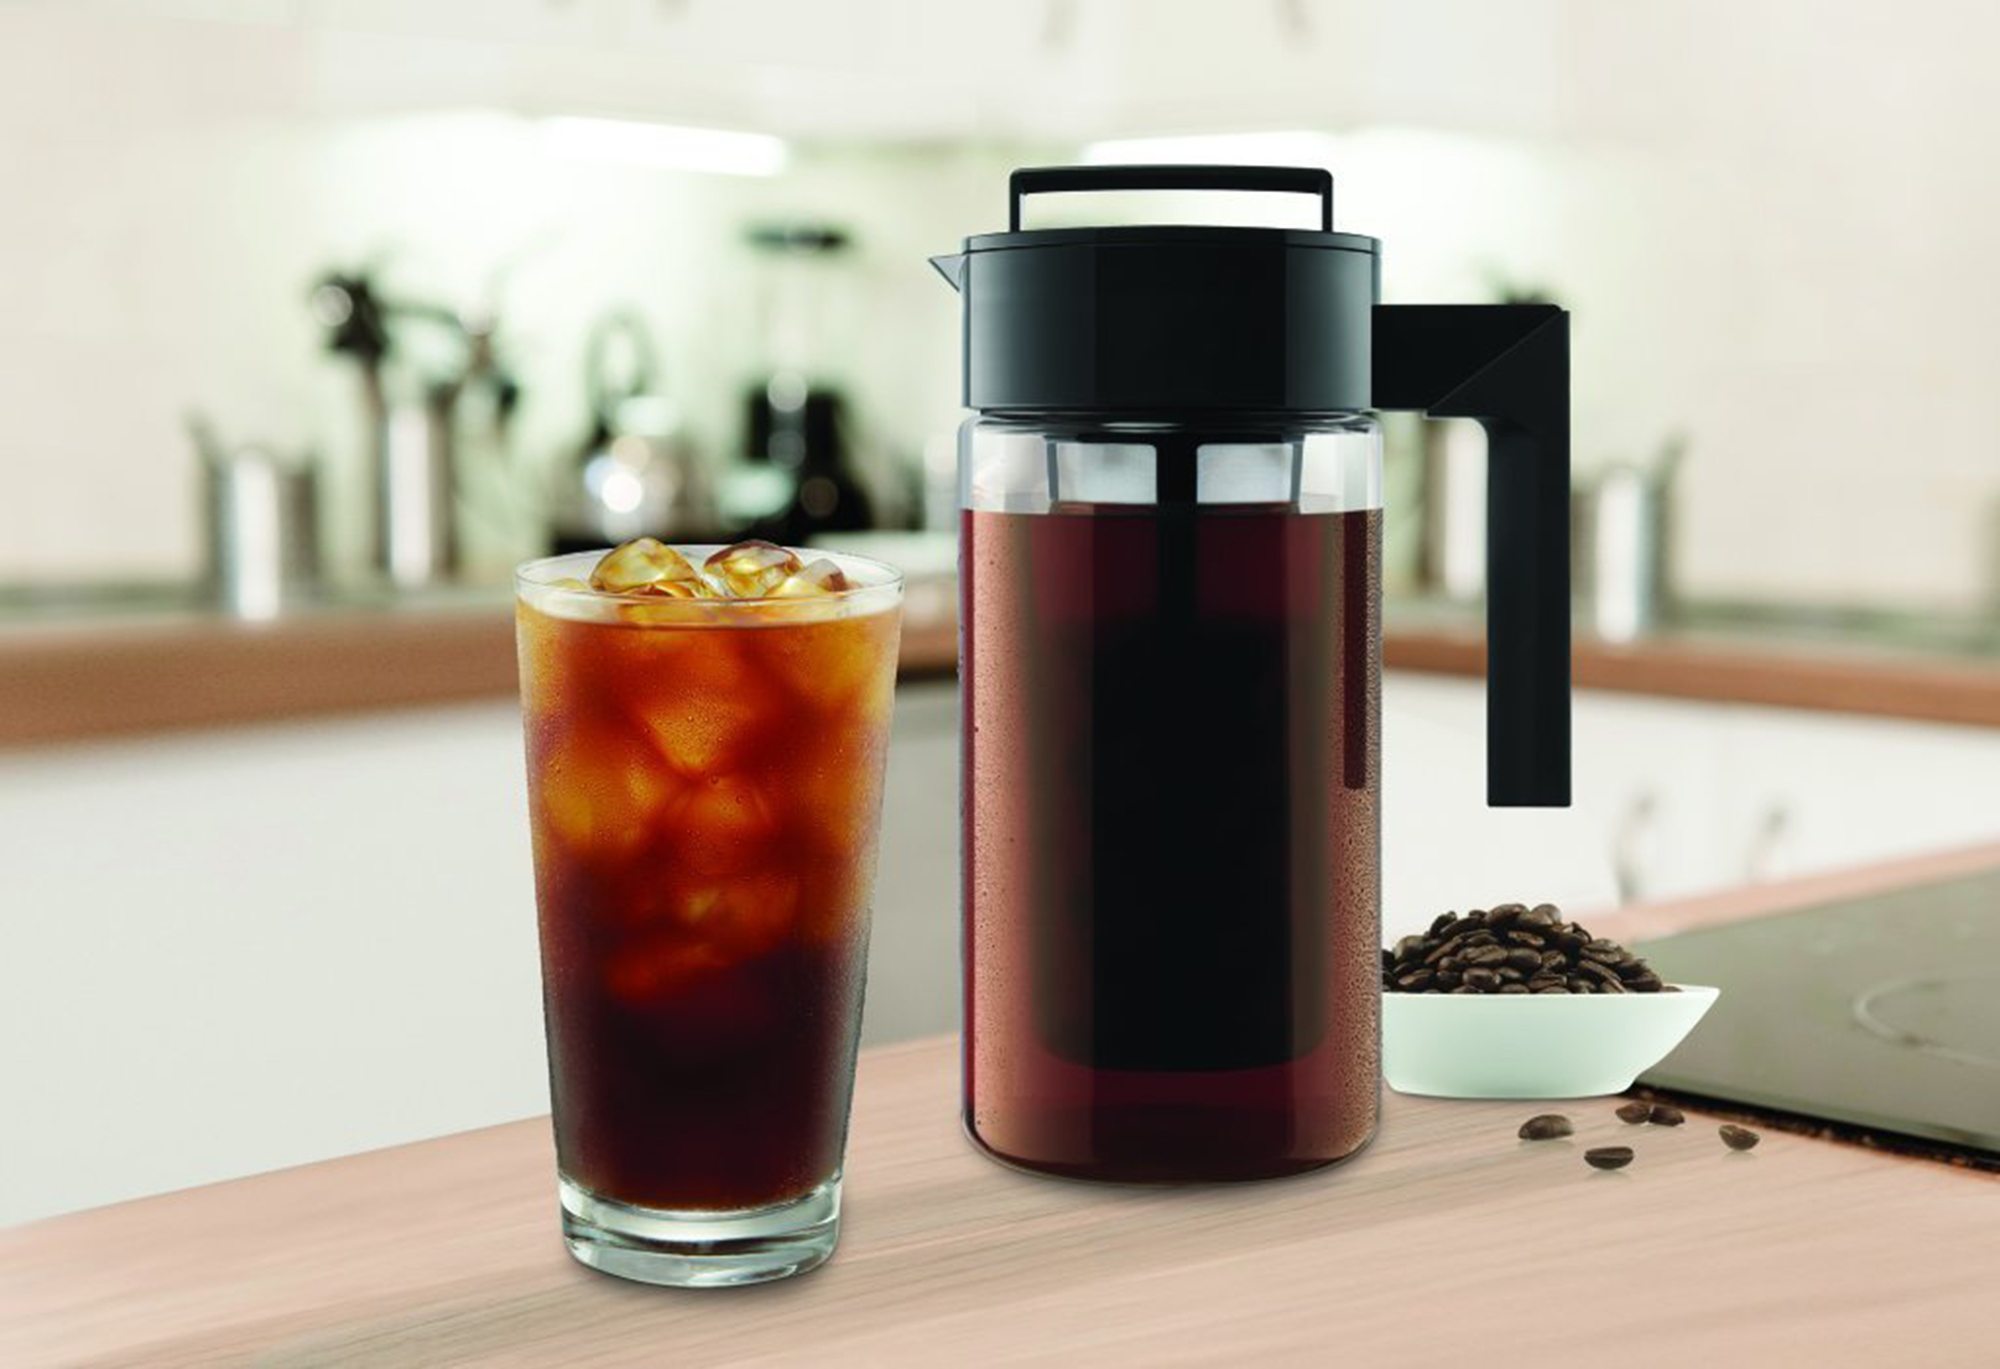 Shopping: Over 1,800 Amazon Customers Swear by This Cold Brew Coffee Maker — And It's Only $25